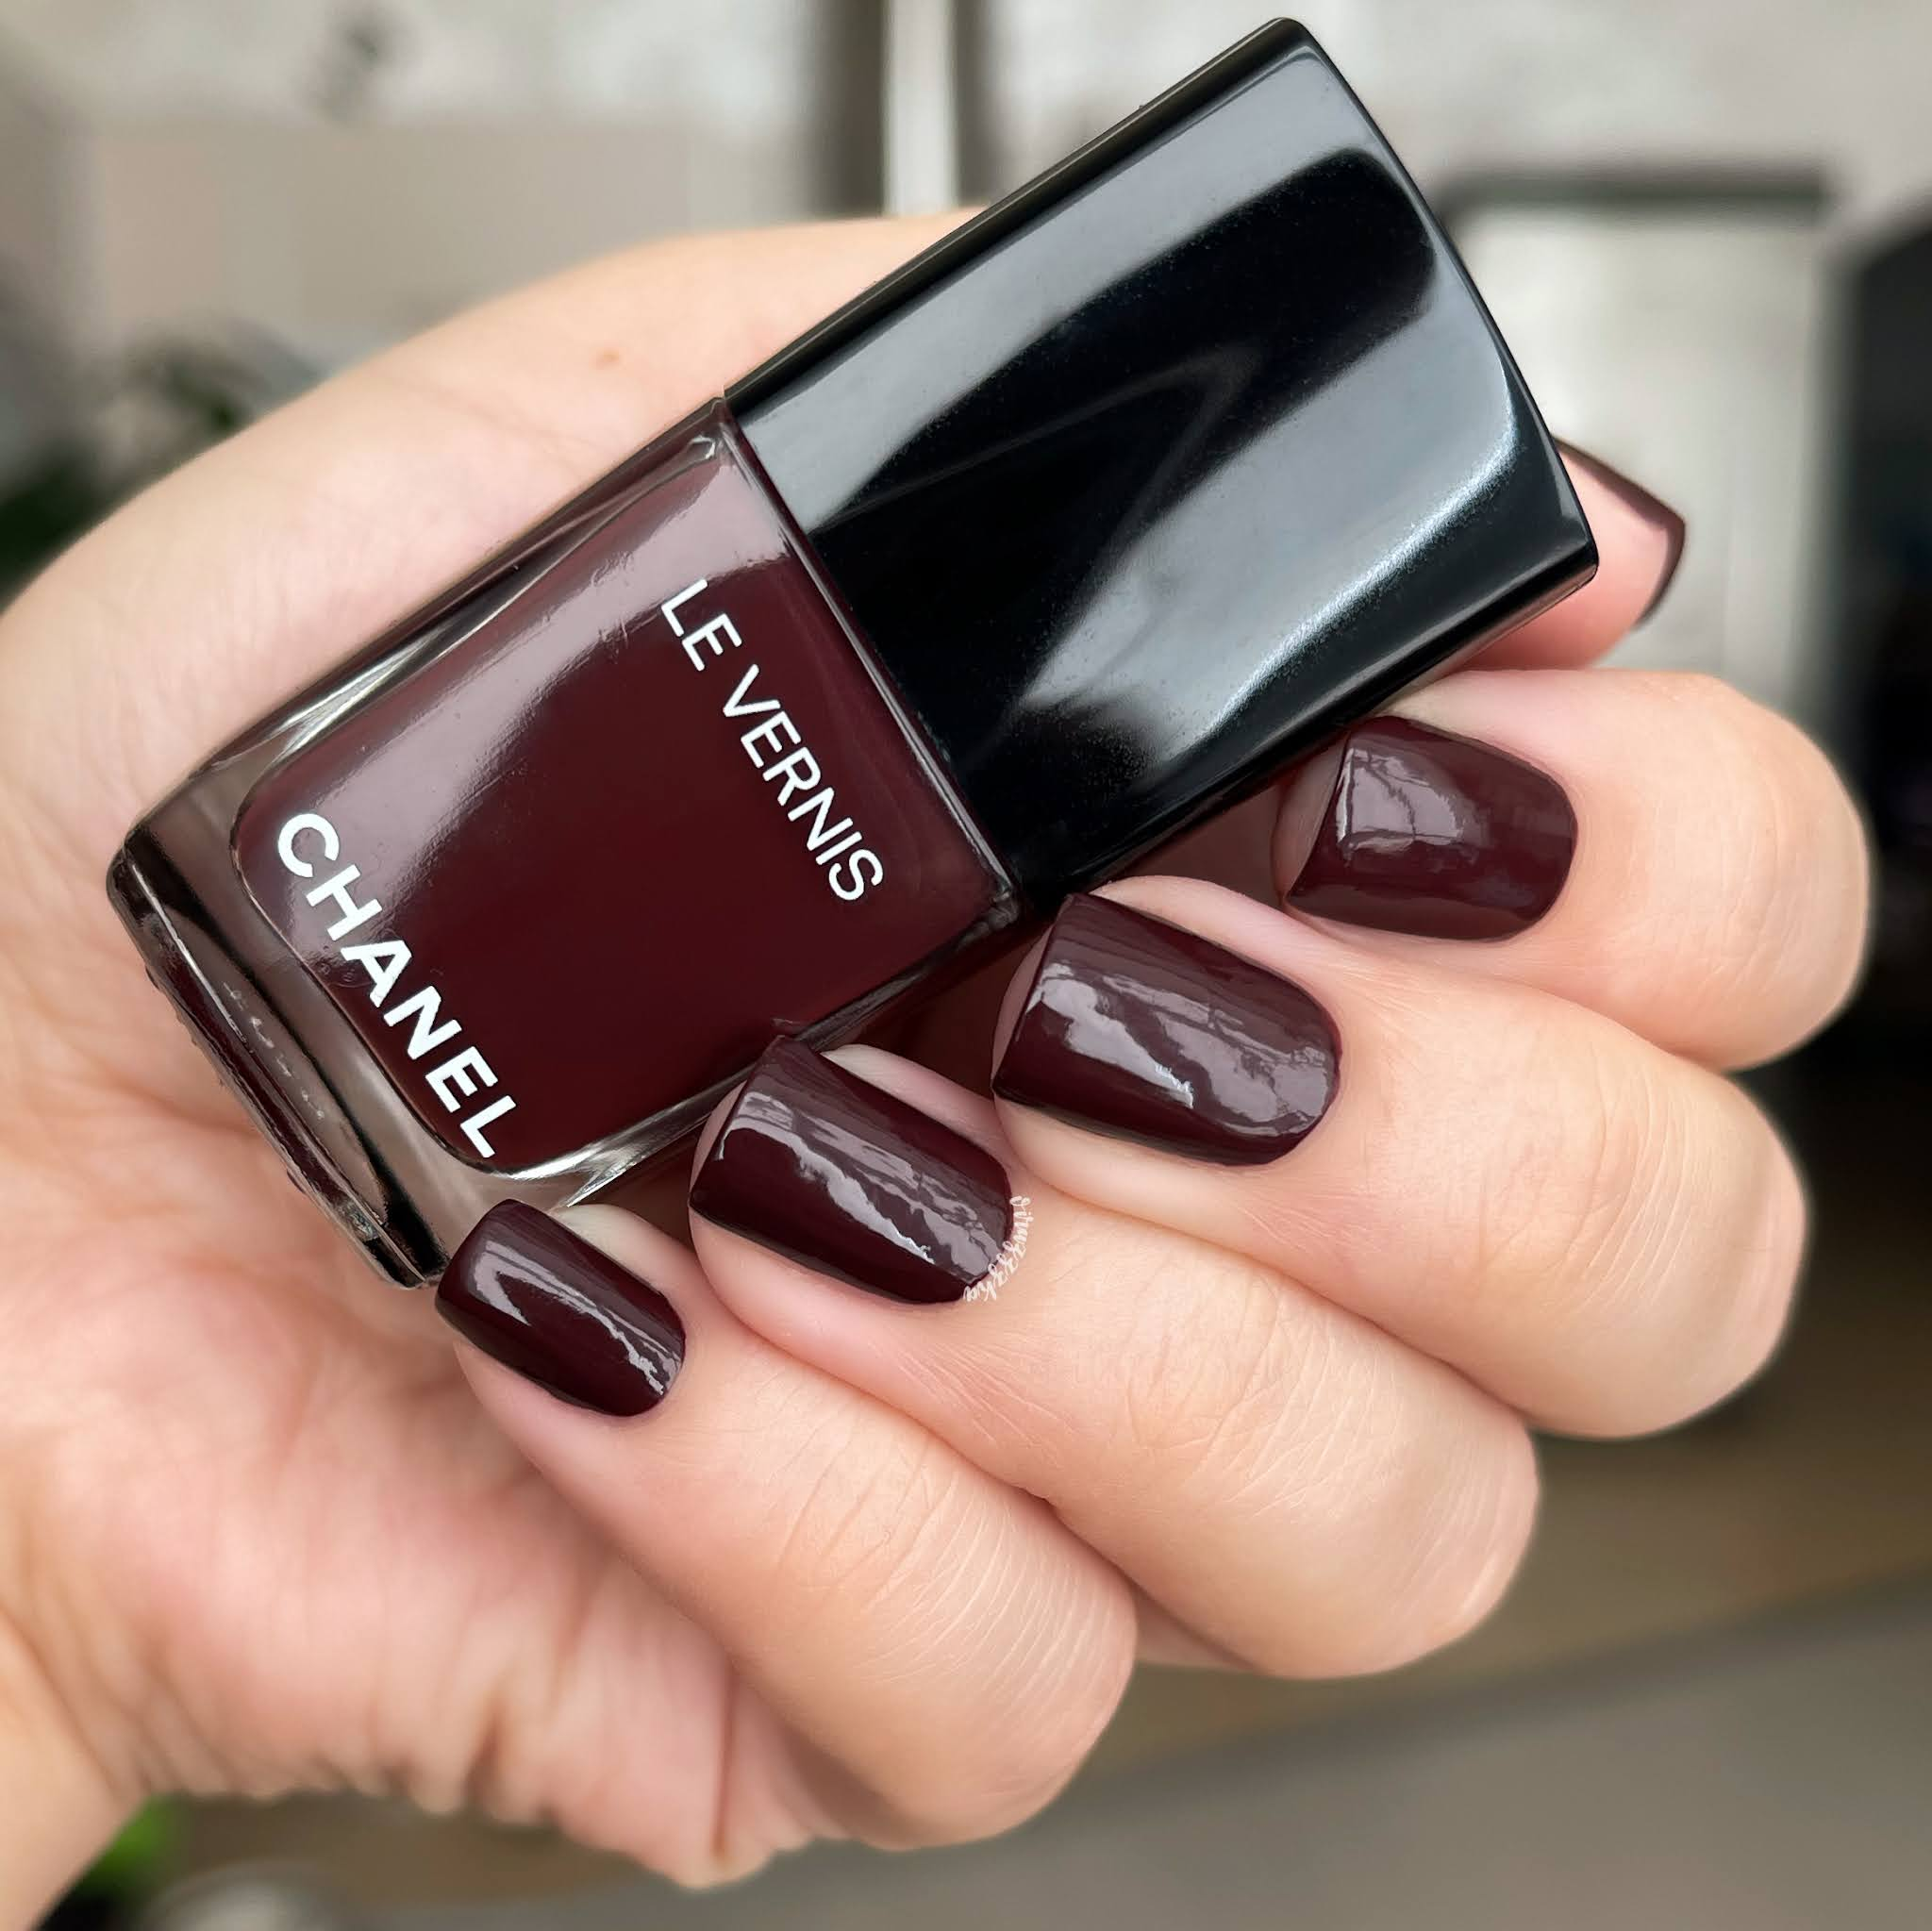 Chanel Rouge Brun 907 burgundy nails fall manicure review